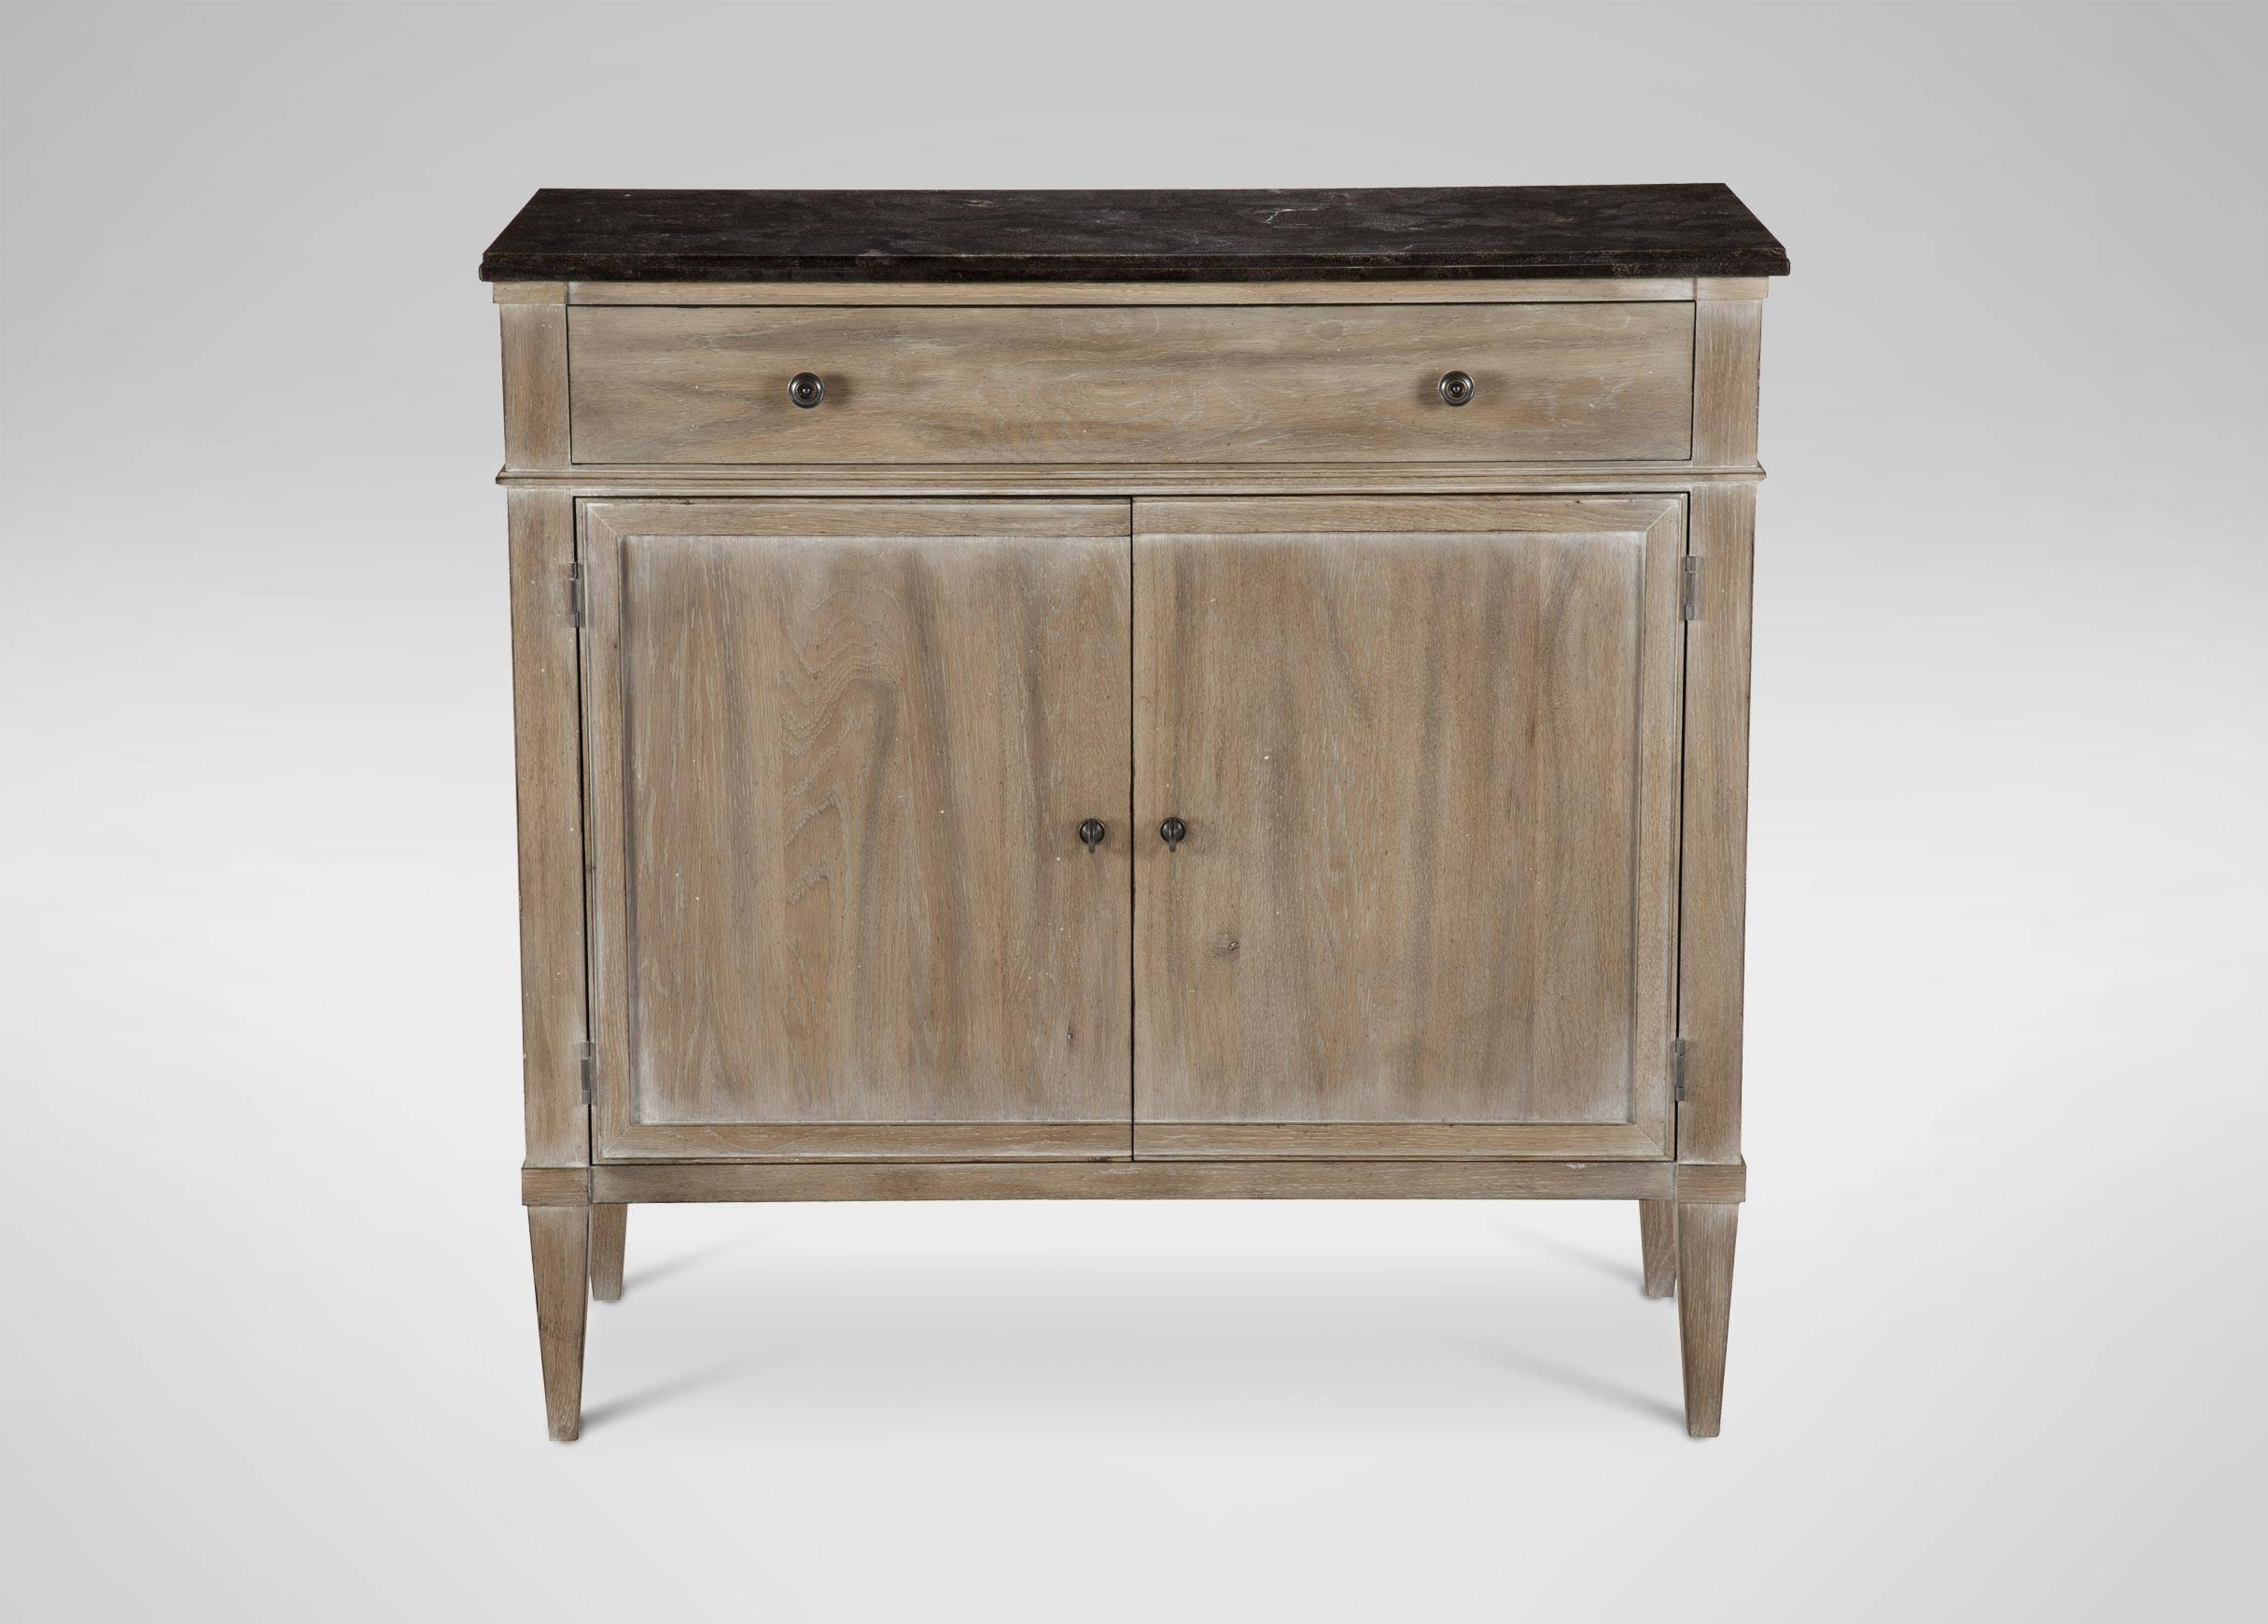 Shop Buffet Storage, Sideboards & Servers | Ethan Allen Throughout Current Ethan Allen Sideboards (View 9 of 15)